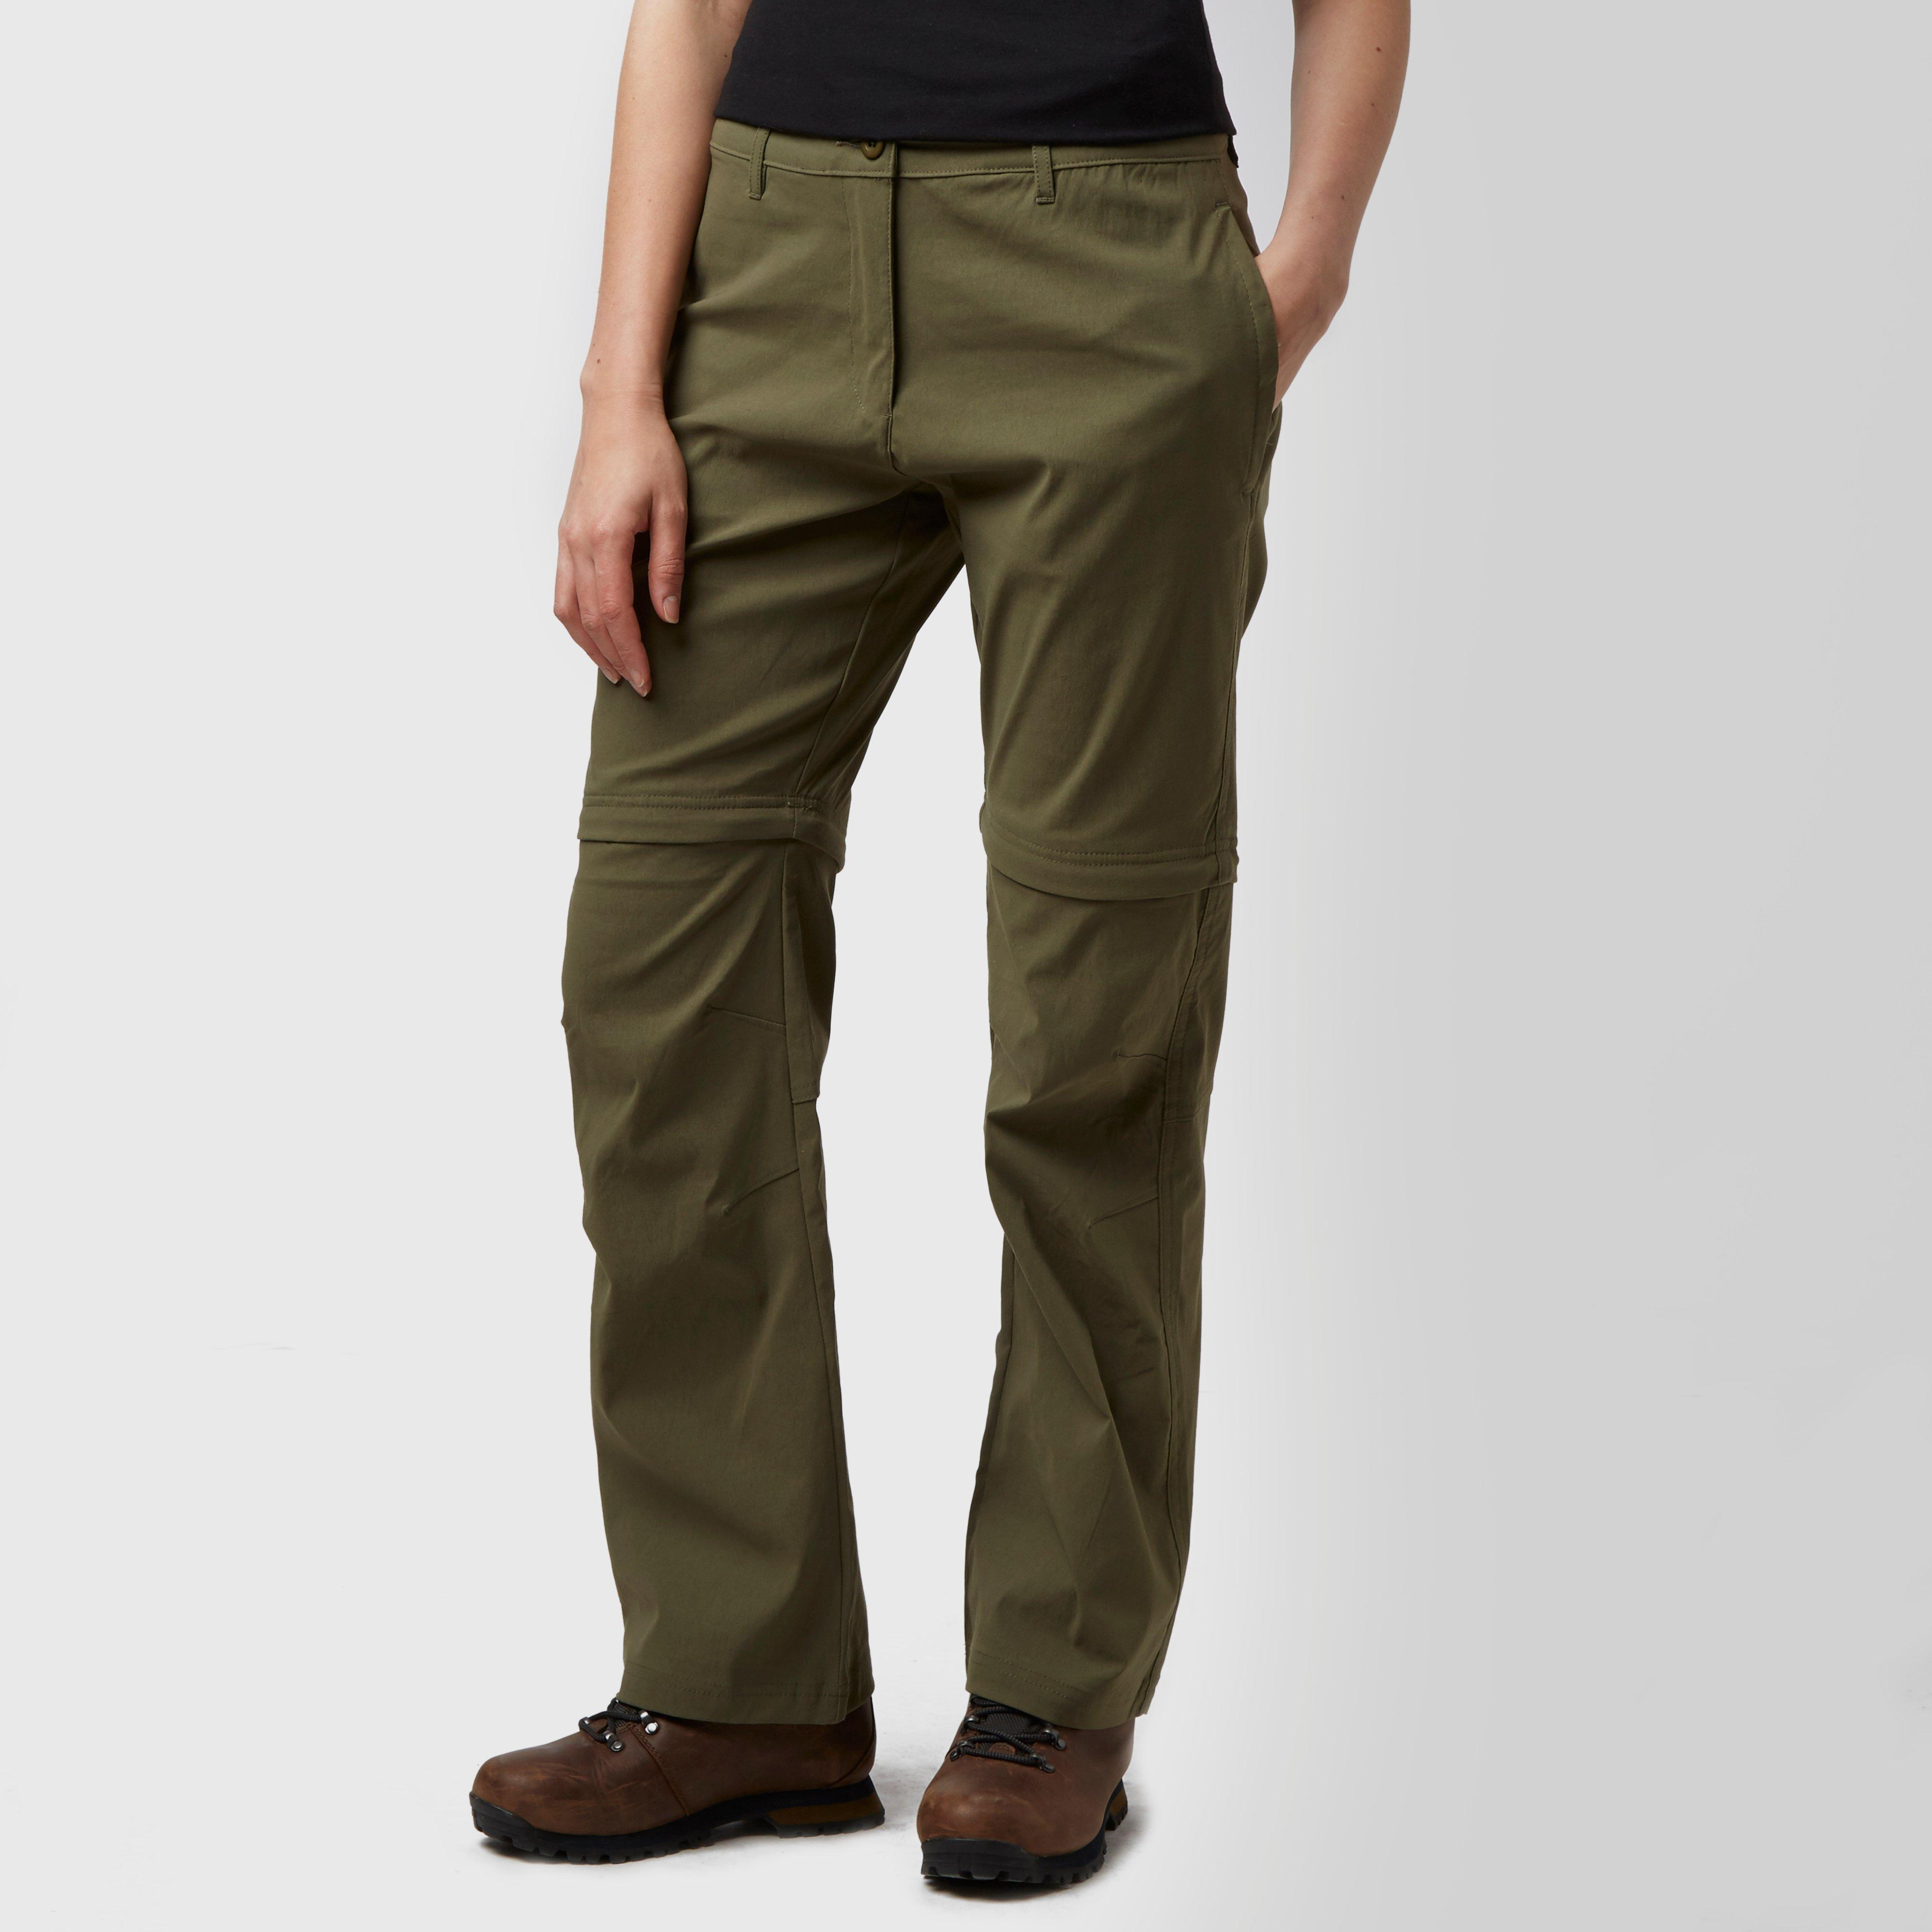 Peter Storm Women's Stretch Convertible Zip Off Trousers - Green, Green Review thumbnail